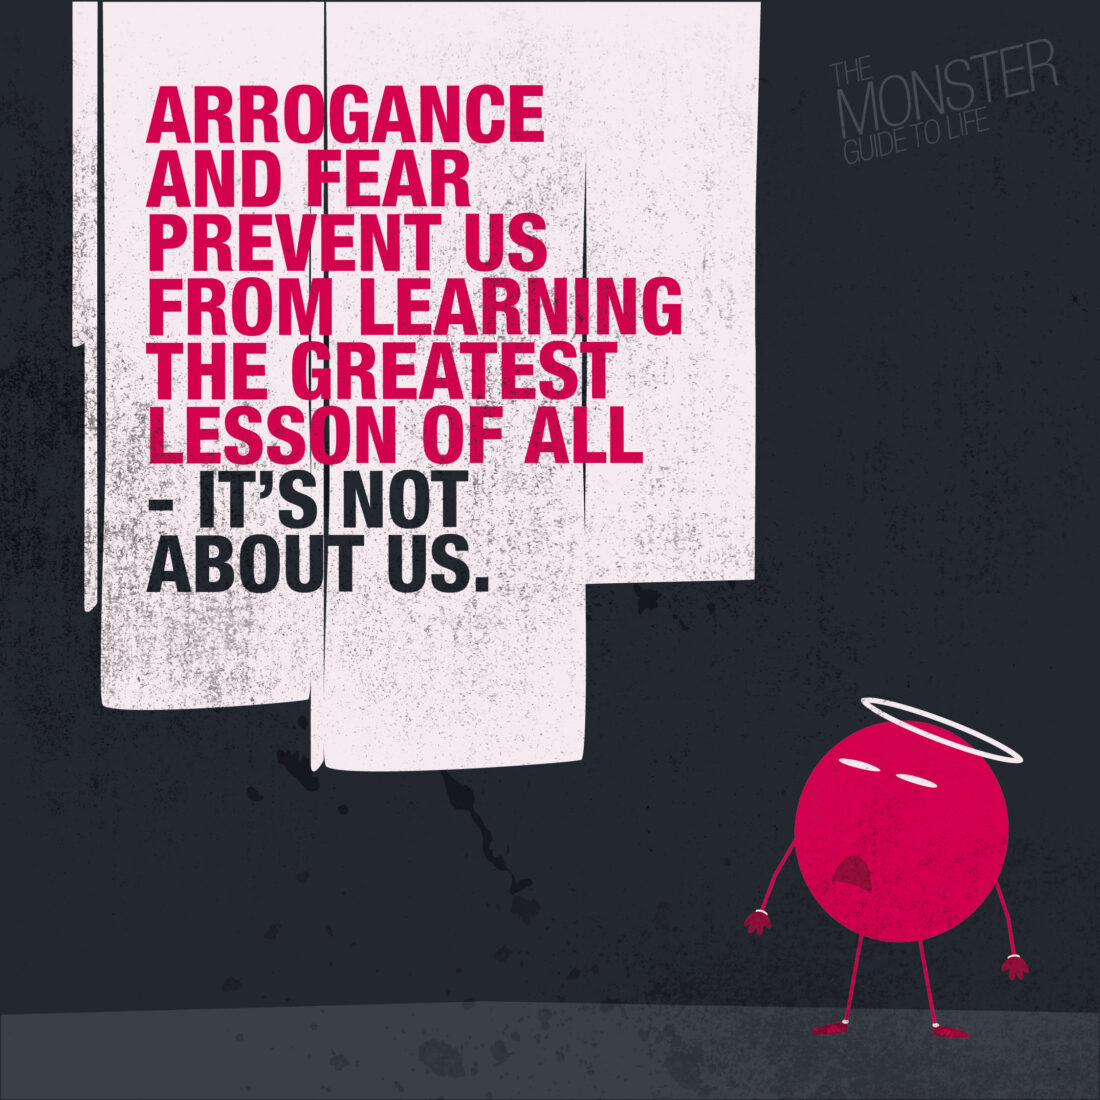 Arrogance And Fear Prevent Us From Learning The Greatest Lesson Of All - It's Not About Us